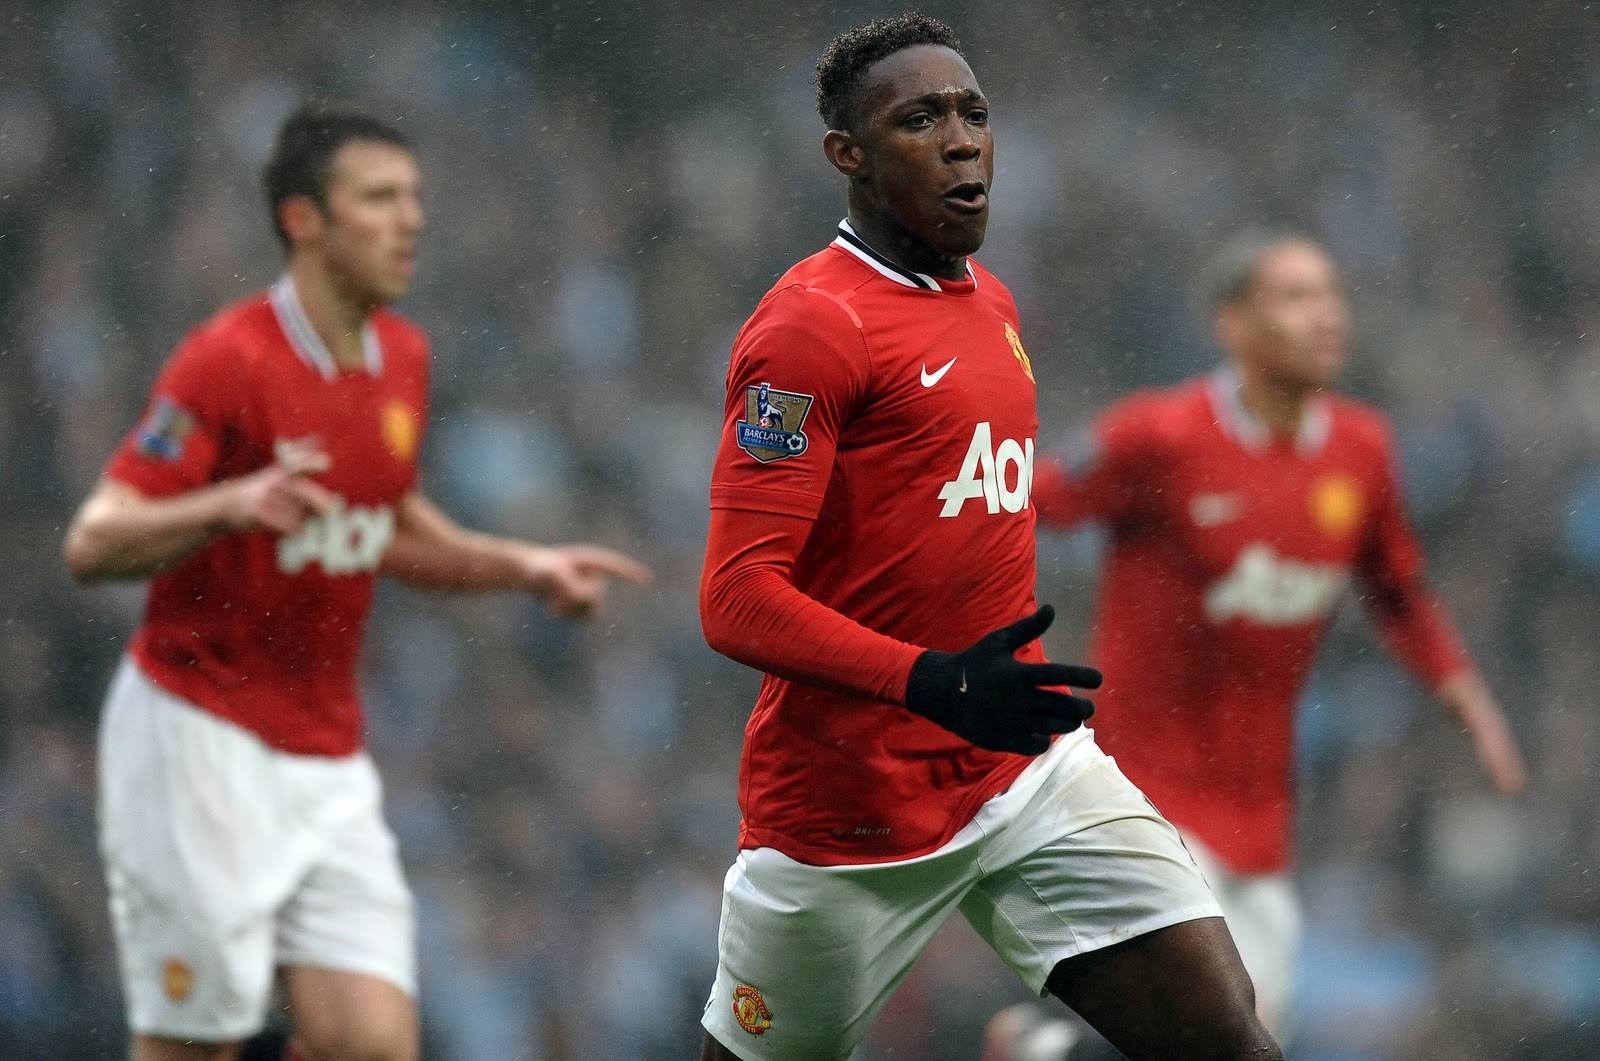 Danny-Welbeck-Manchester-United